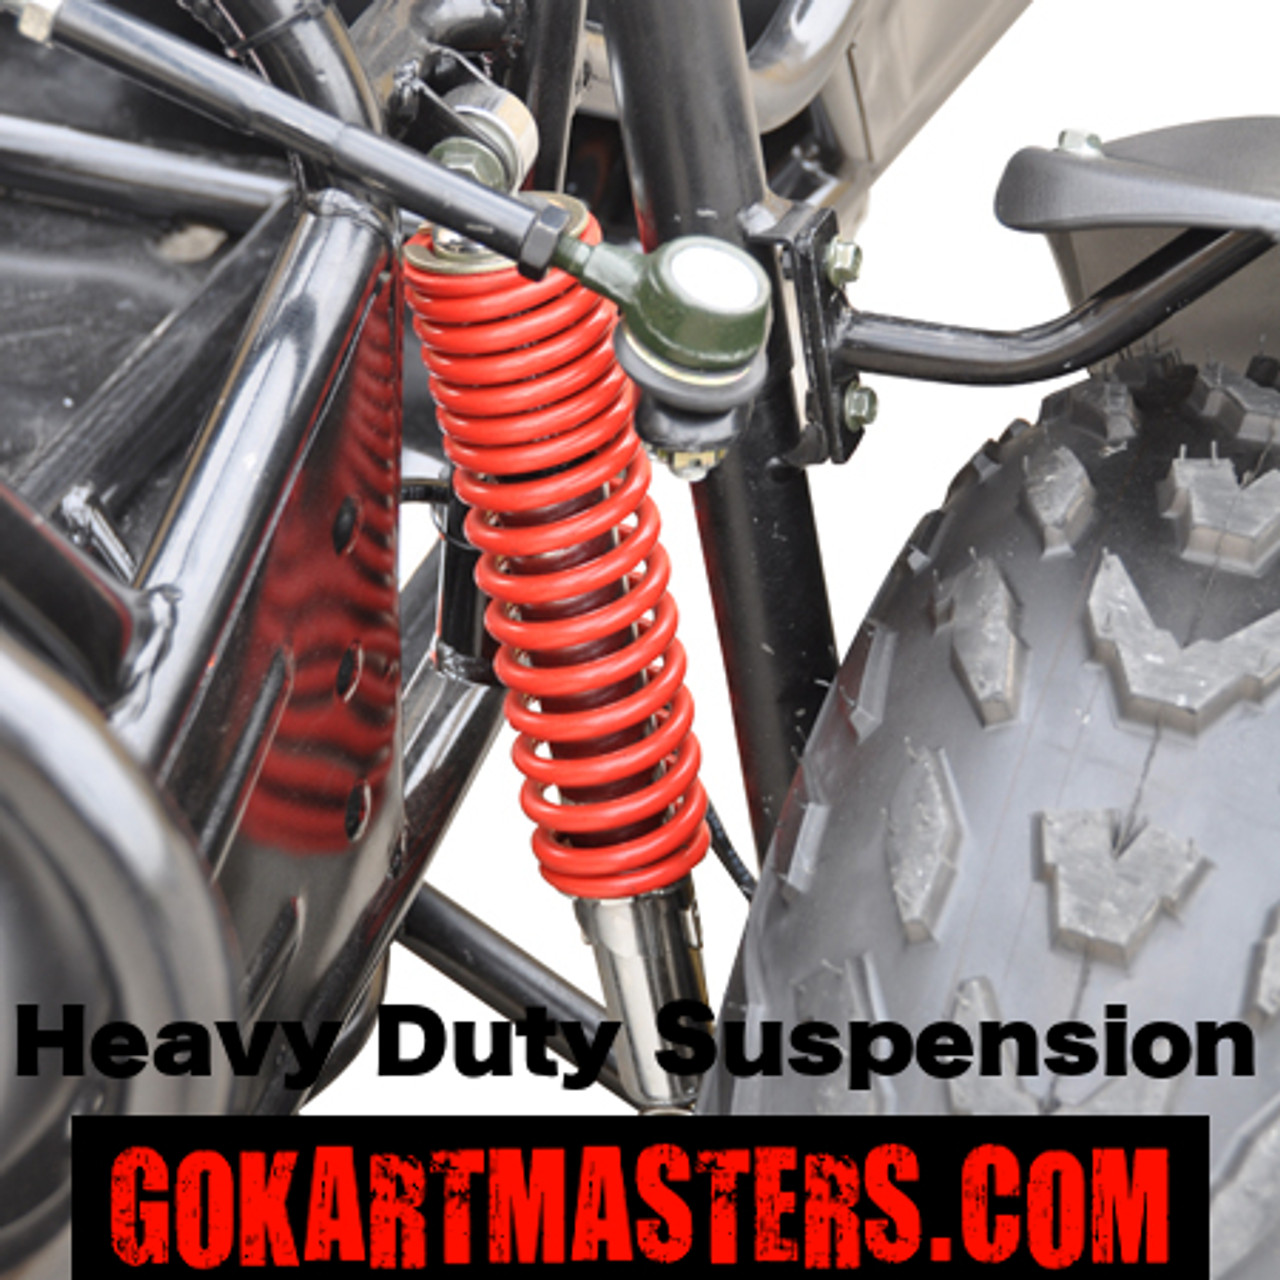 TrailMaster 150 XRS Go-Kart - Heavy Duty Suspension